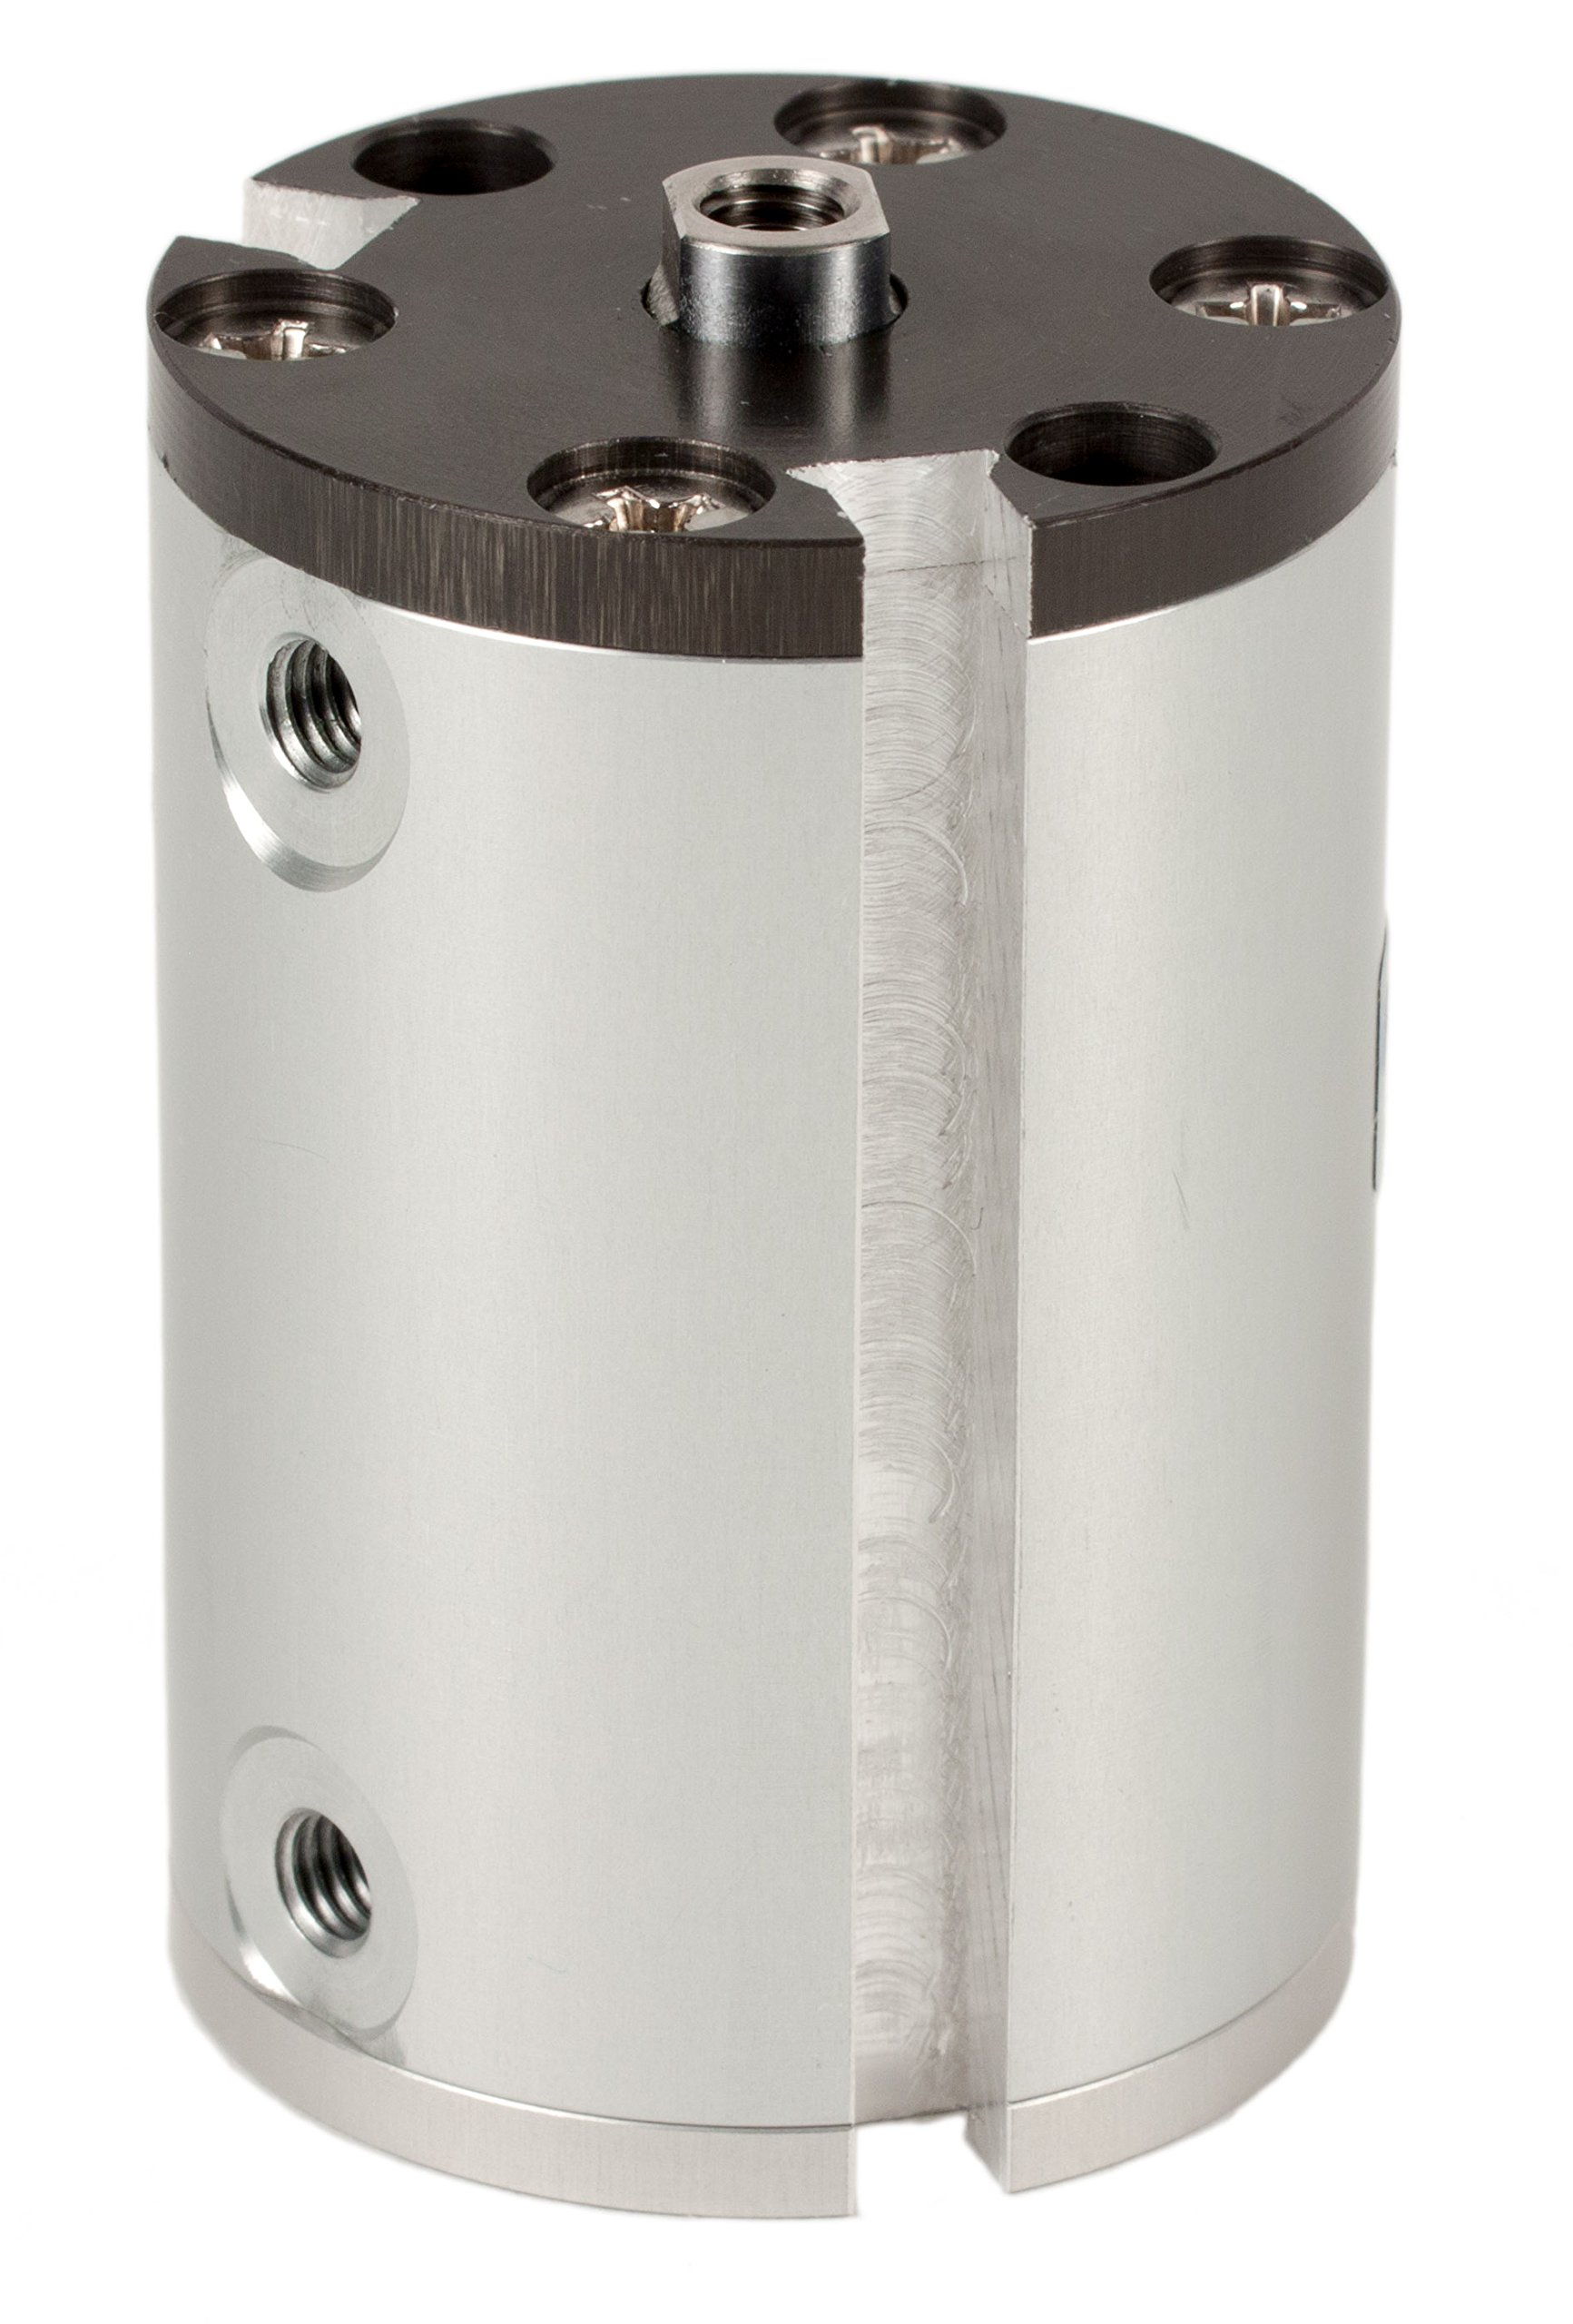 Fabco-Air J-7-X-E Original Pancake Cylinder, Double Acting, Maximum Pressure of 250 PSI, Switch Ready with Magnet, 3/4'' Bore Diameter x 1-1/2'' Stroke